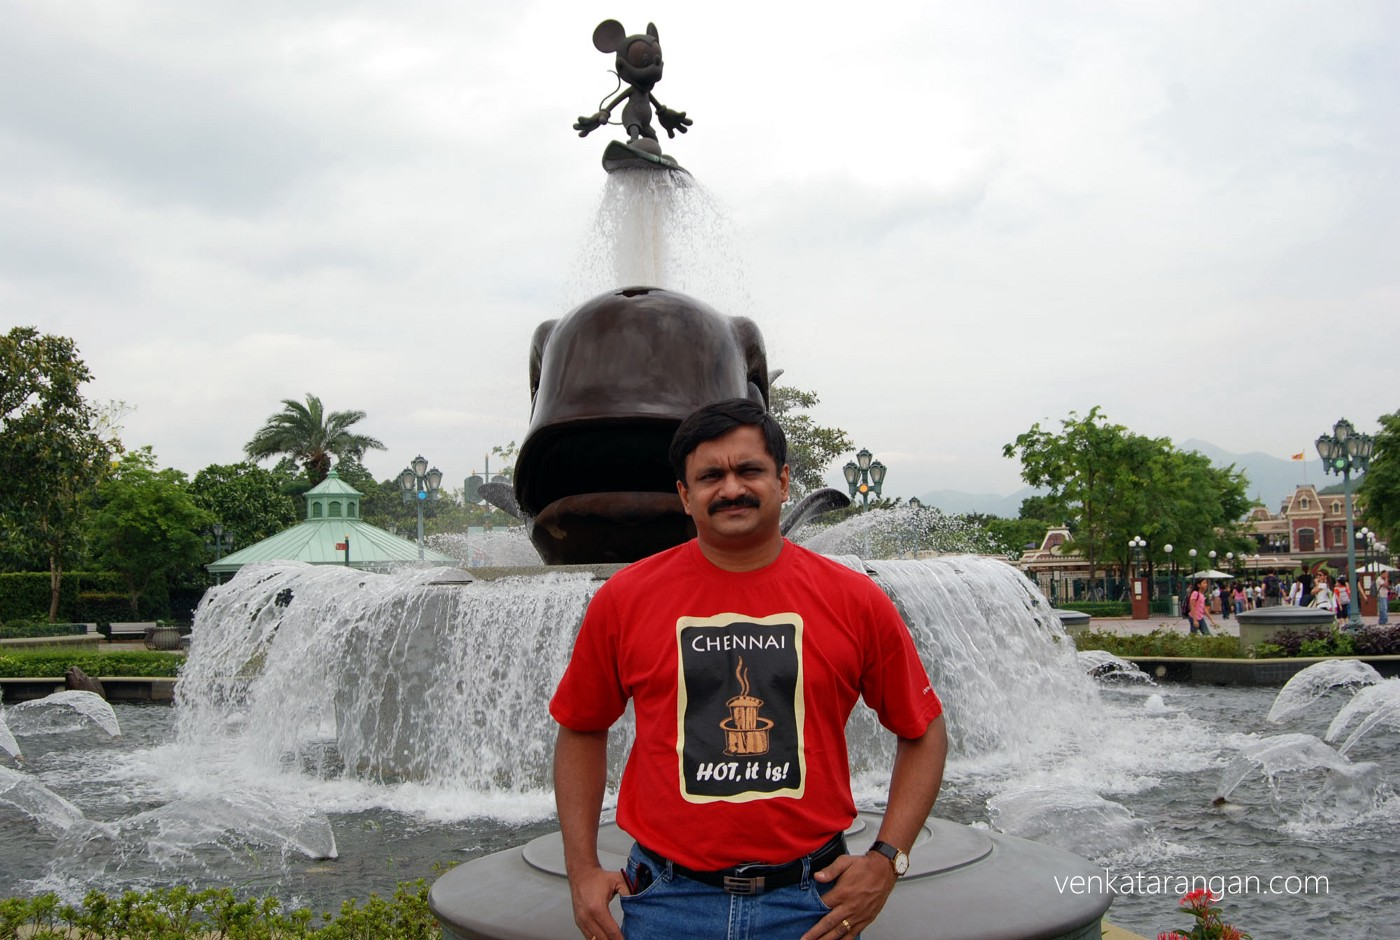 Venkatarangan in front of the Mickey Mouse surfing water fountain